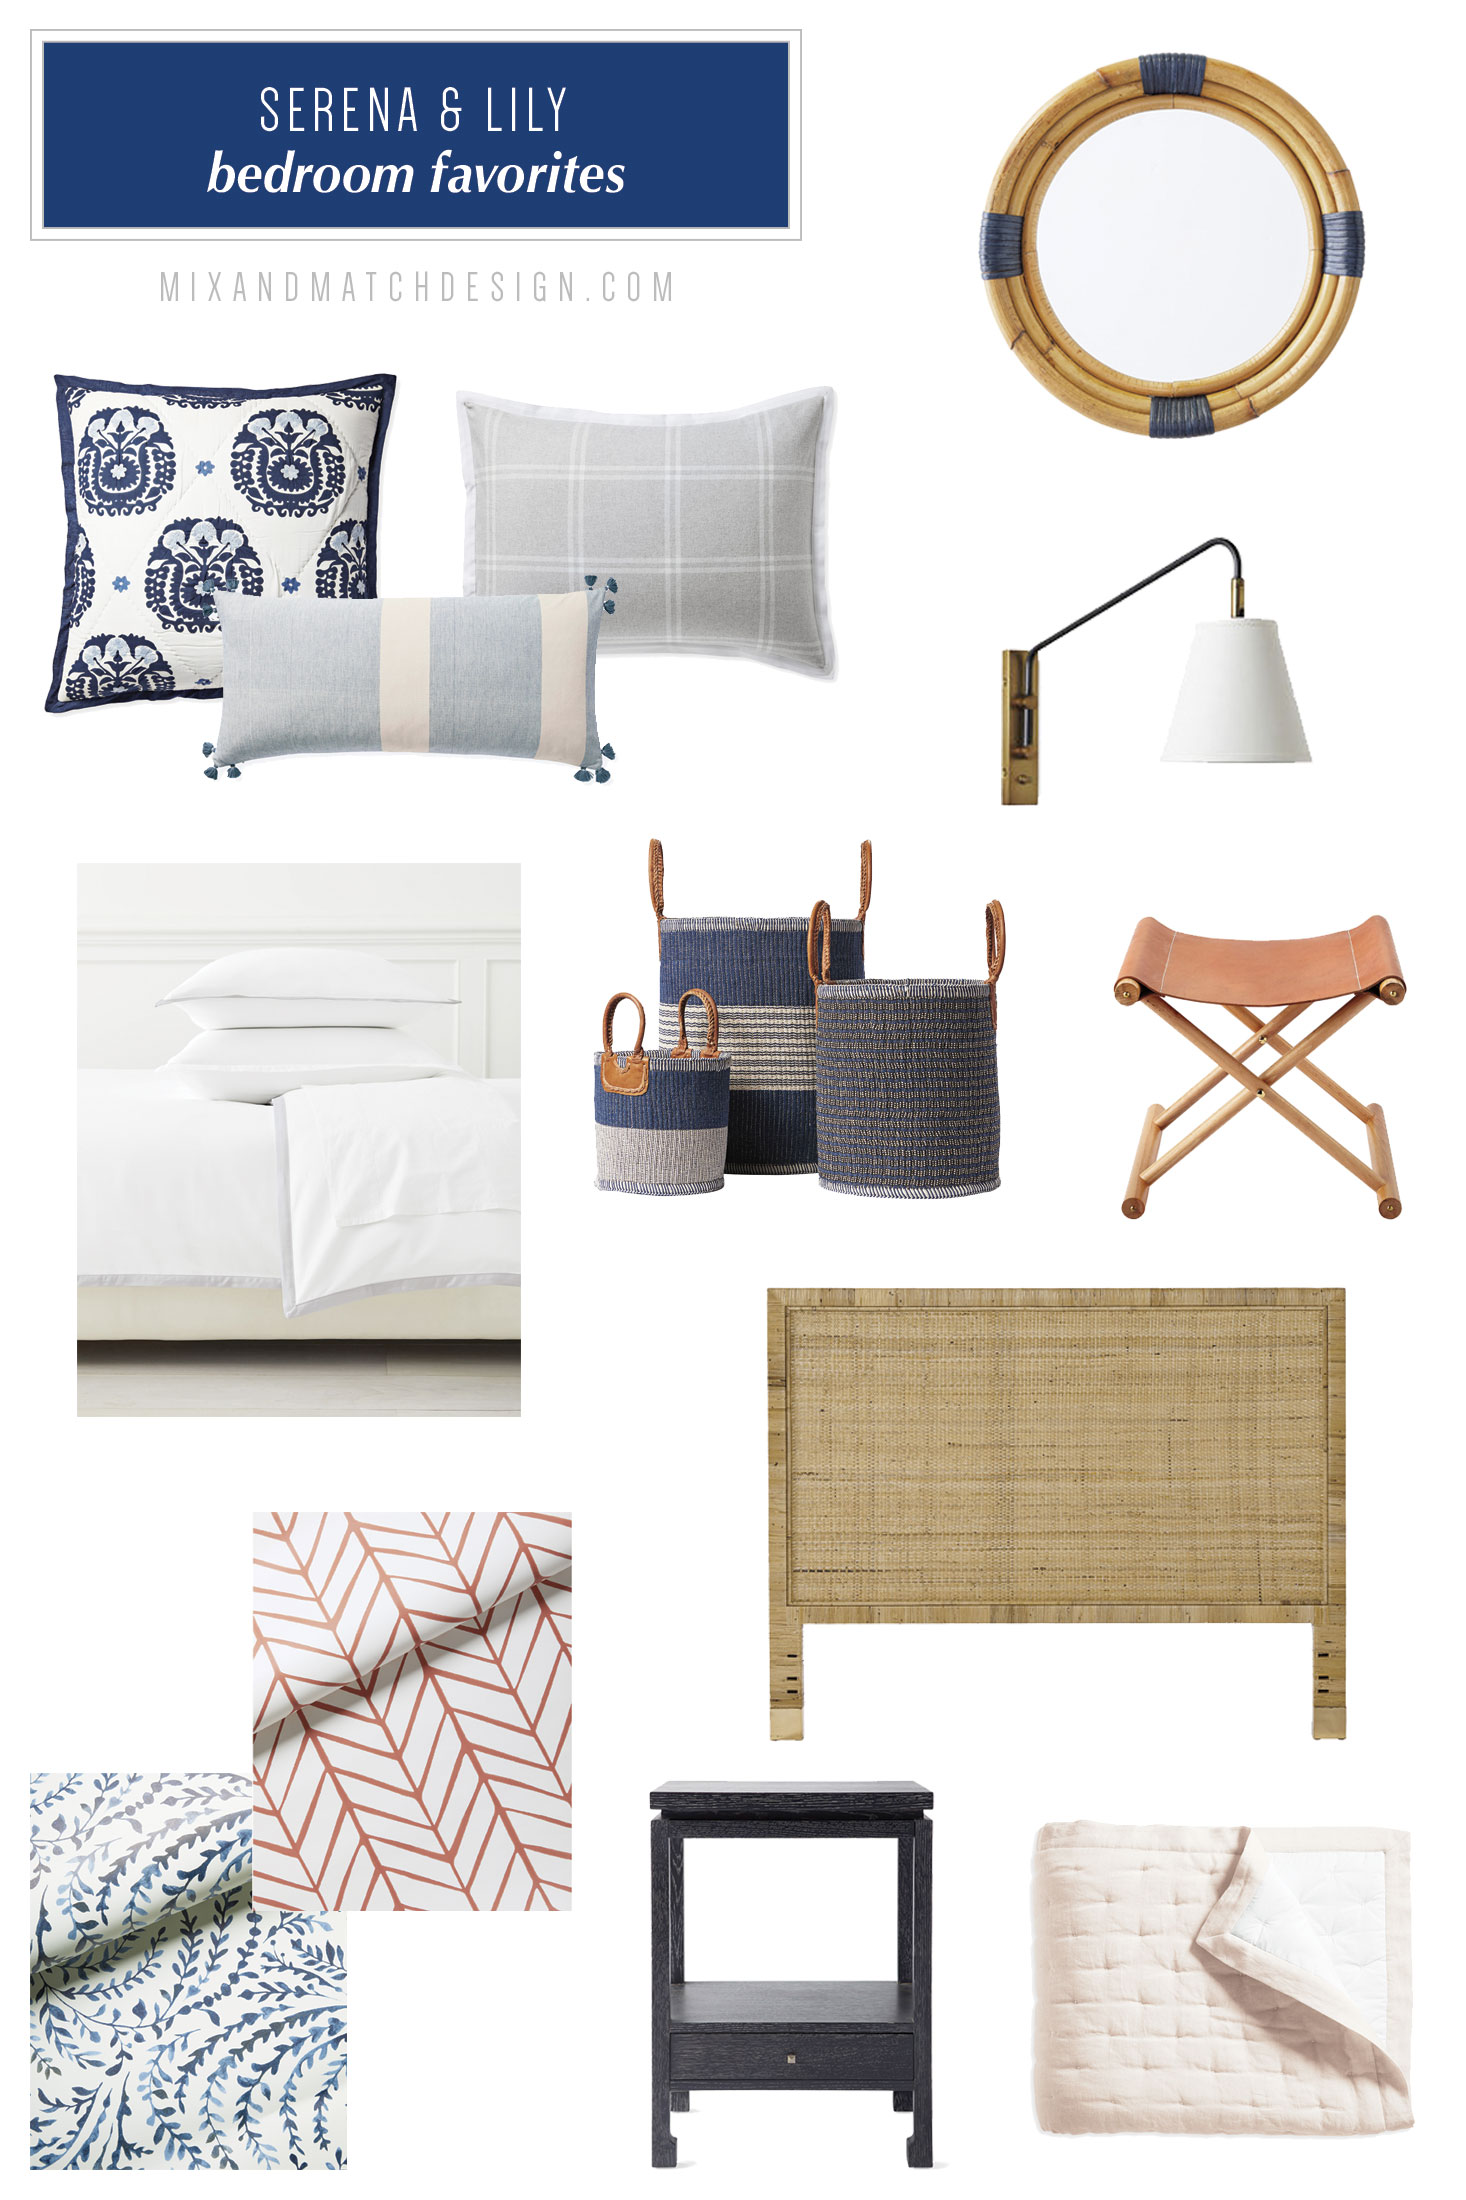 Serena & Lily is one of my favorite places to shop for modern coastal decor and I've rounded up a bunch of my favorites from their collection for the bedroom to share with you! They have an amazing selection of fresh, tailored furniture and home decor for every room in your home. // #designerfinds #interiordesign #decor #moderncoastal